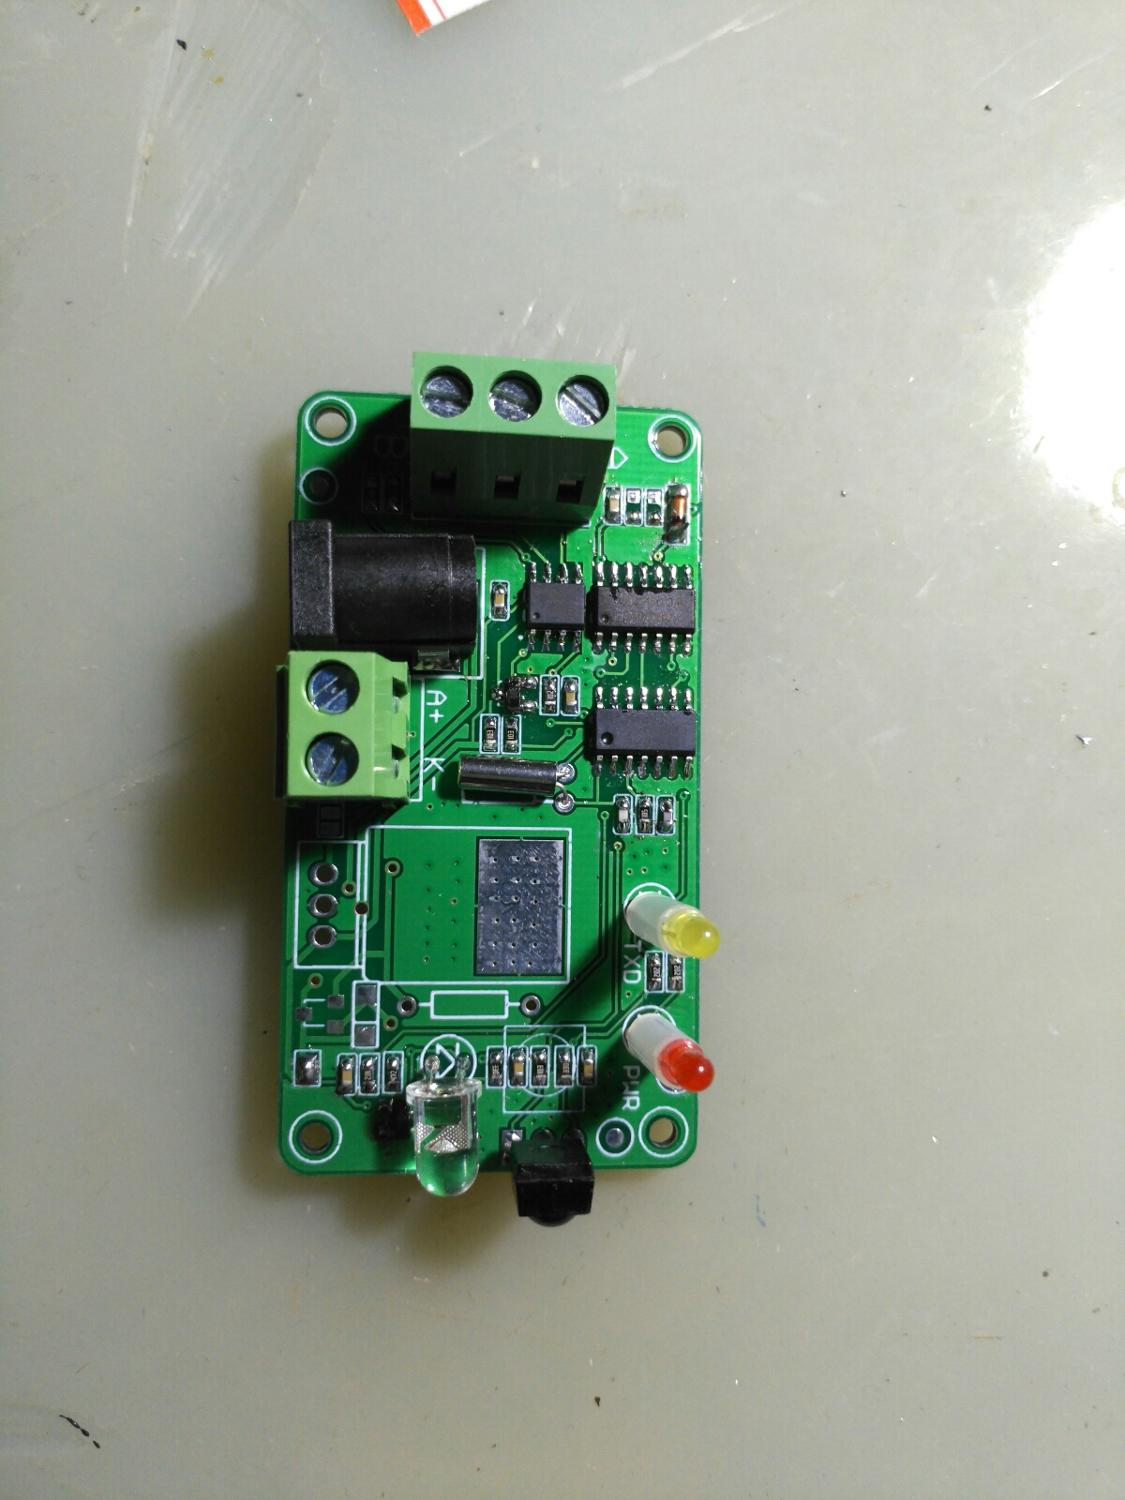 RS485 to infrared meter reading, transmission through communication meter, data acquisition, infrared communication, smart home